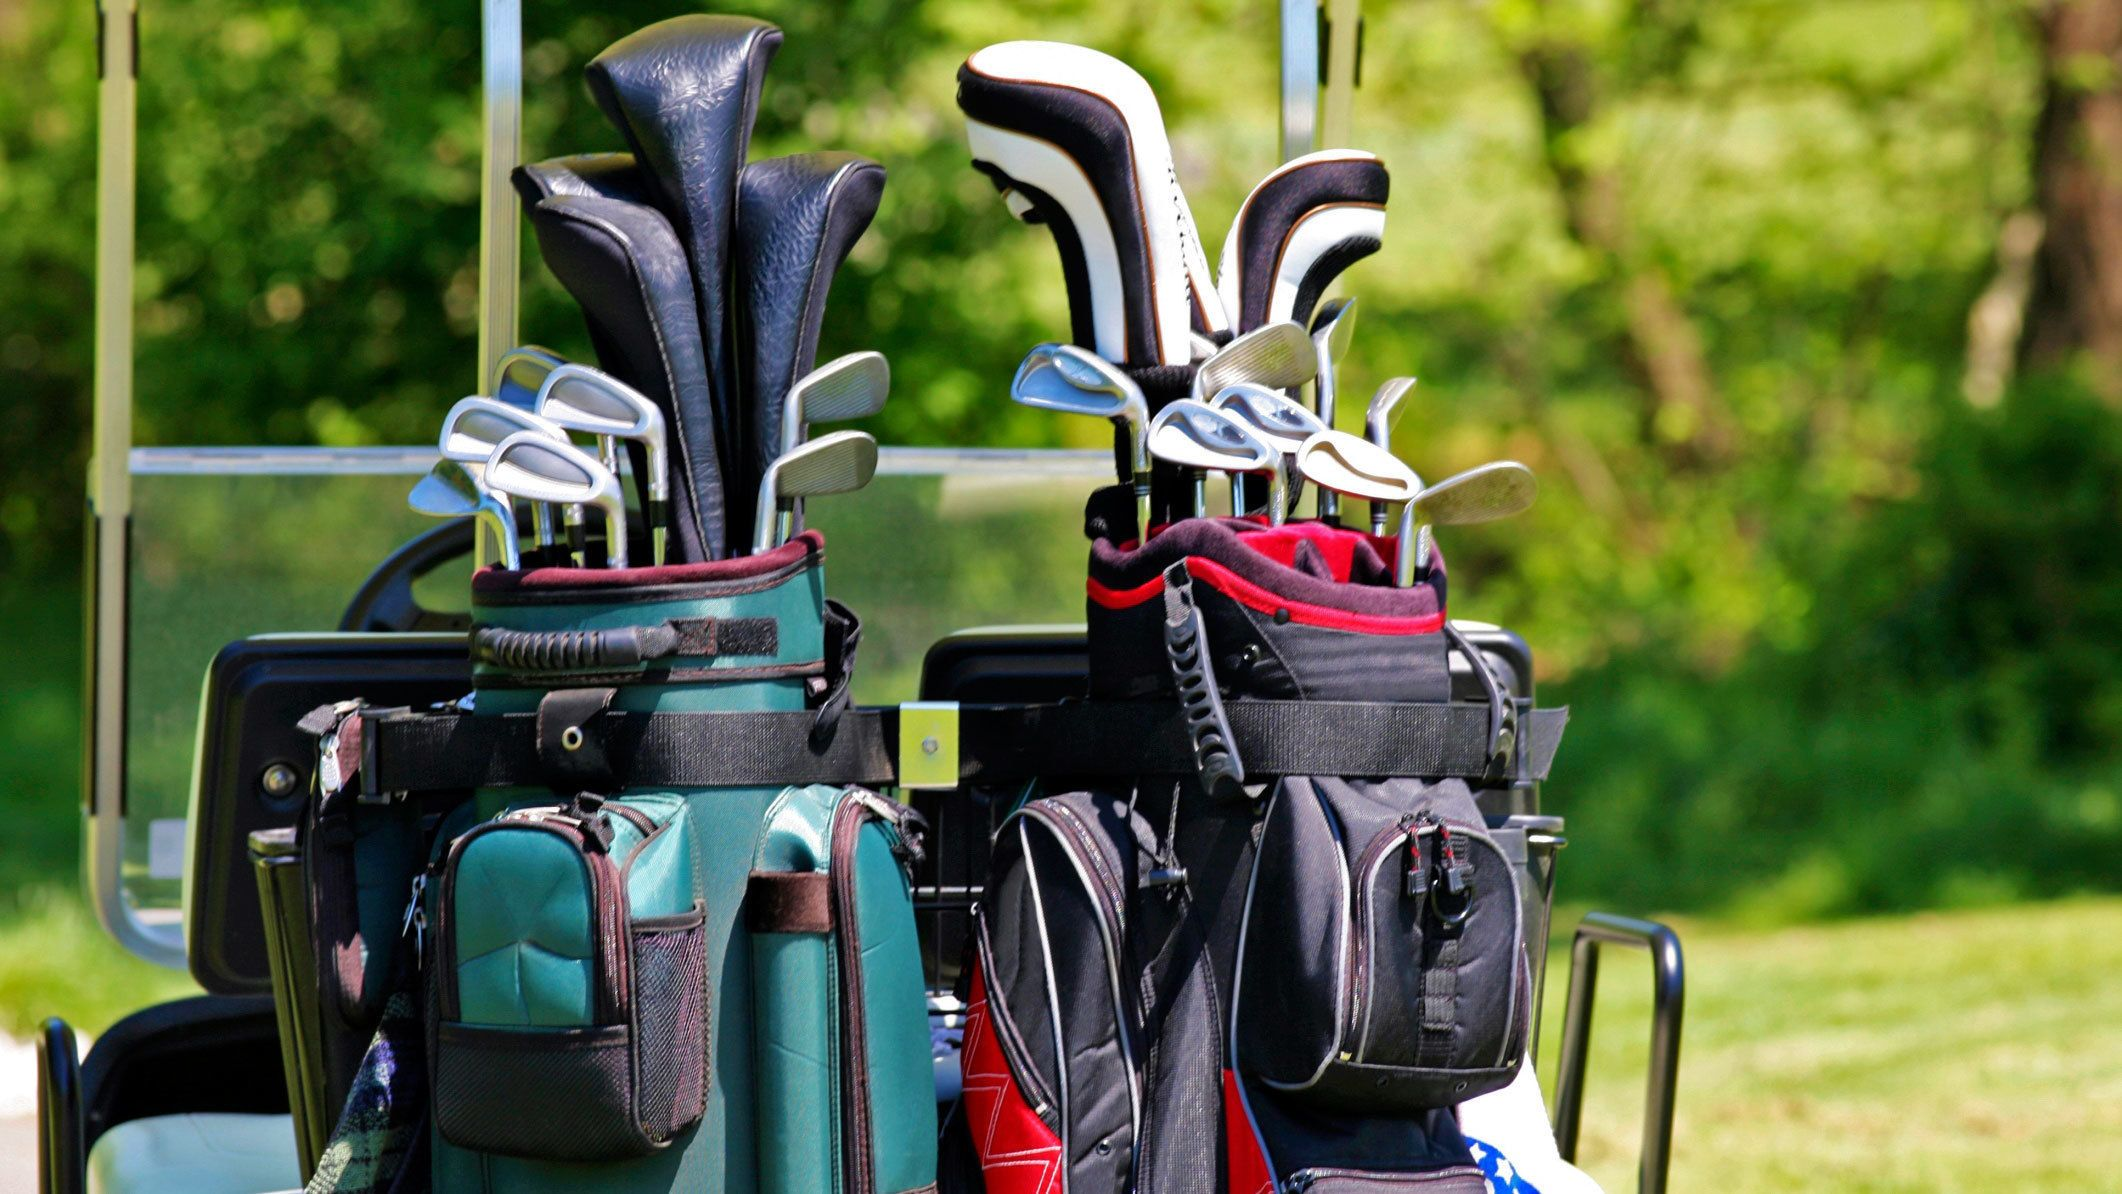 Golf clubs on a golf course in Mexico